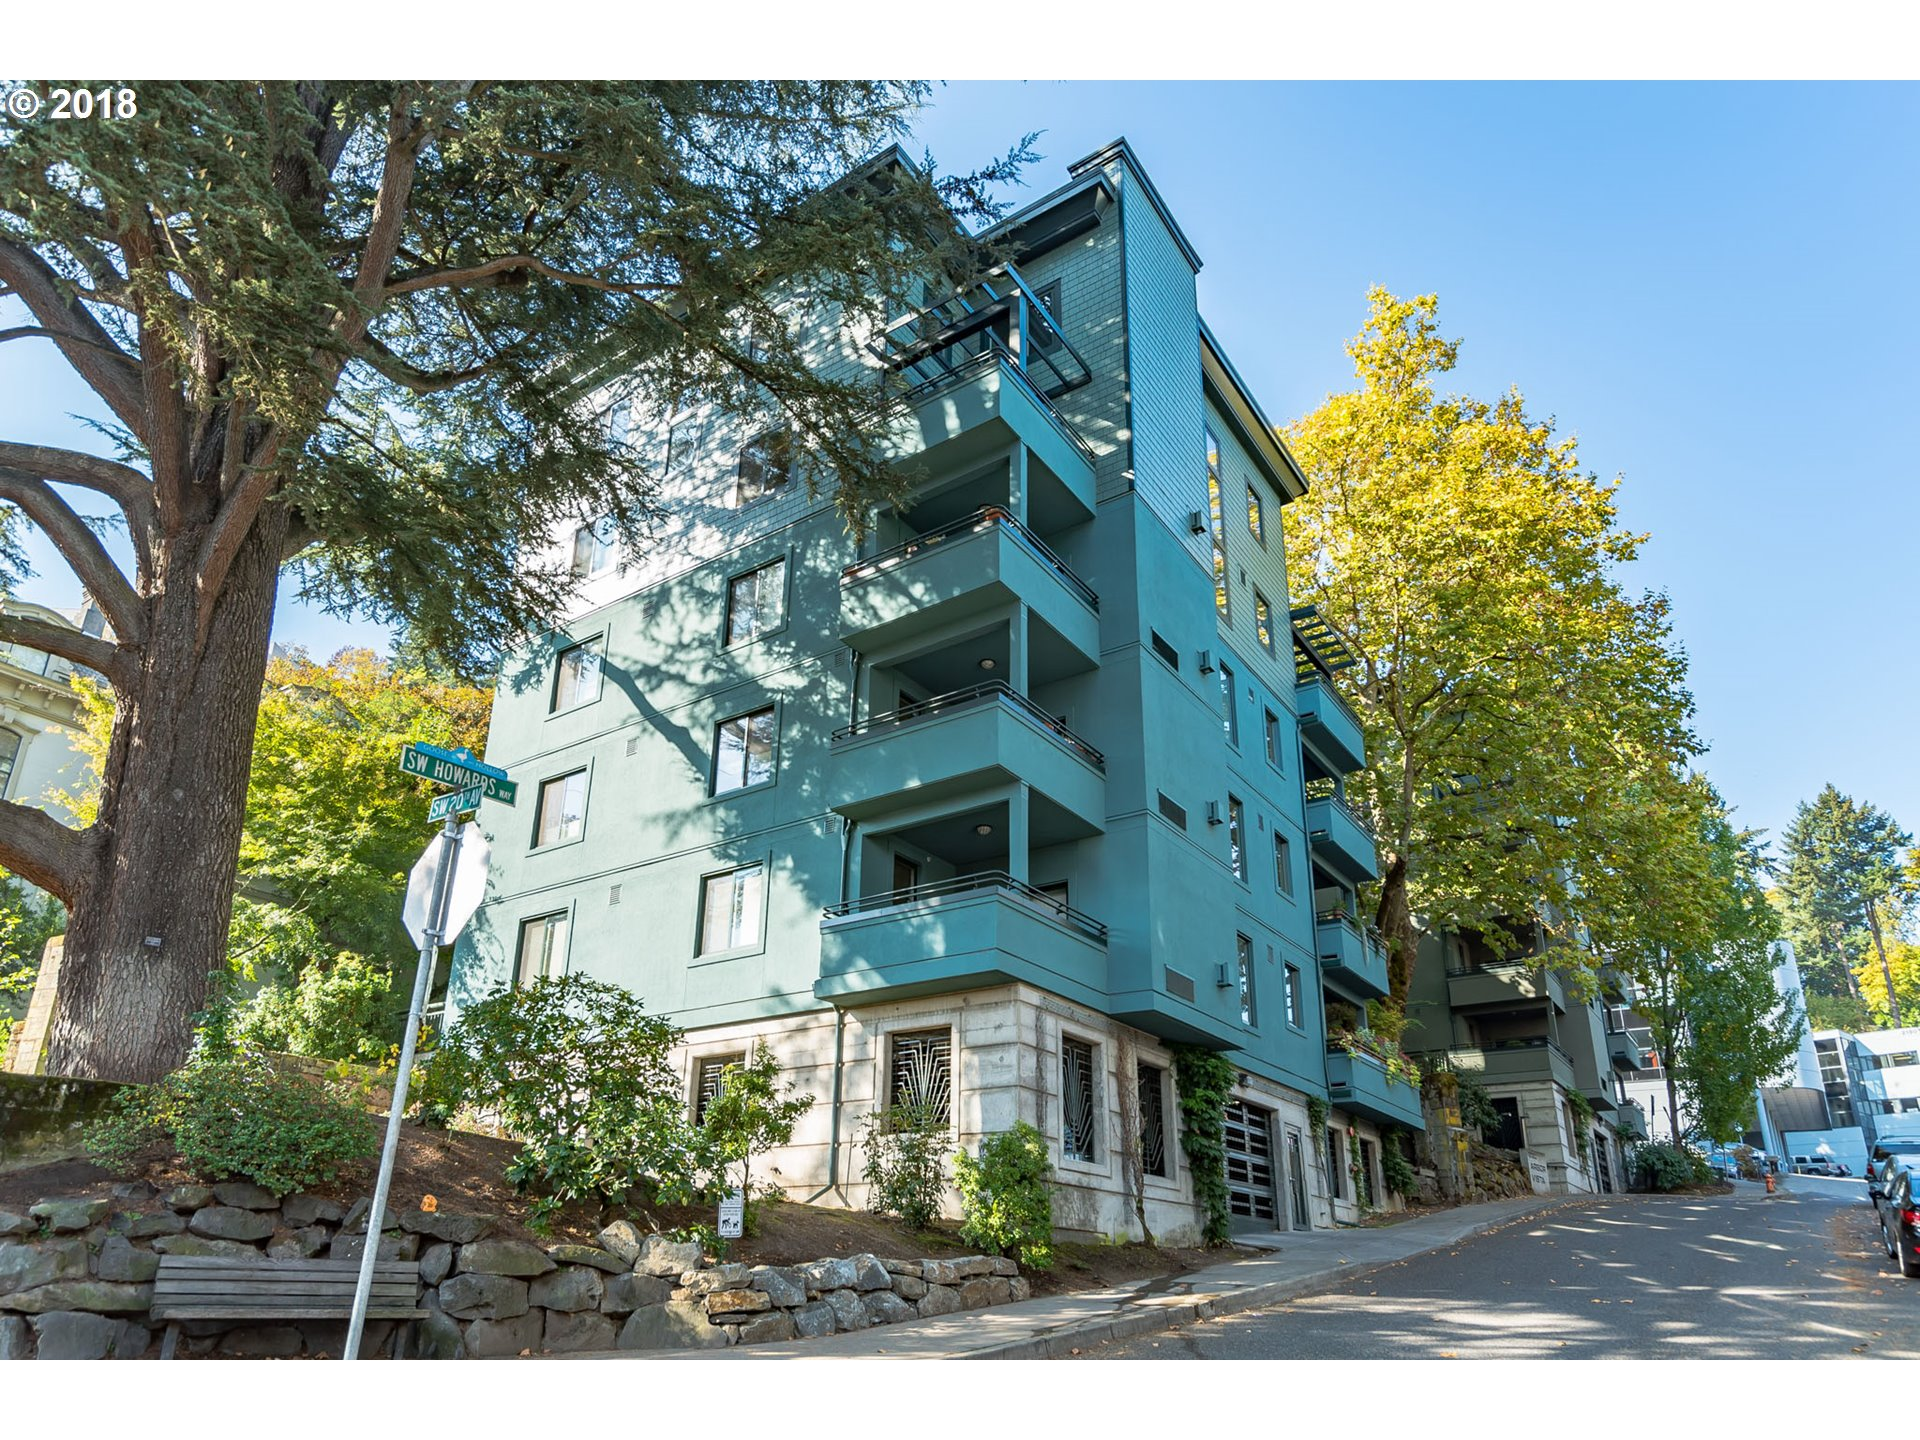 703 sq. ft 1 bedrooms 1 bathrooms  House , Portland, OR